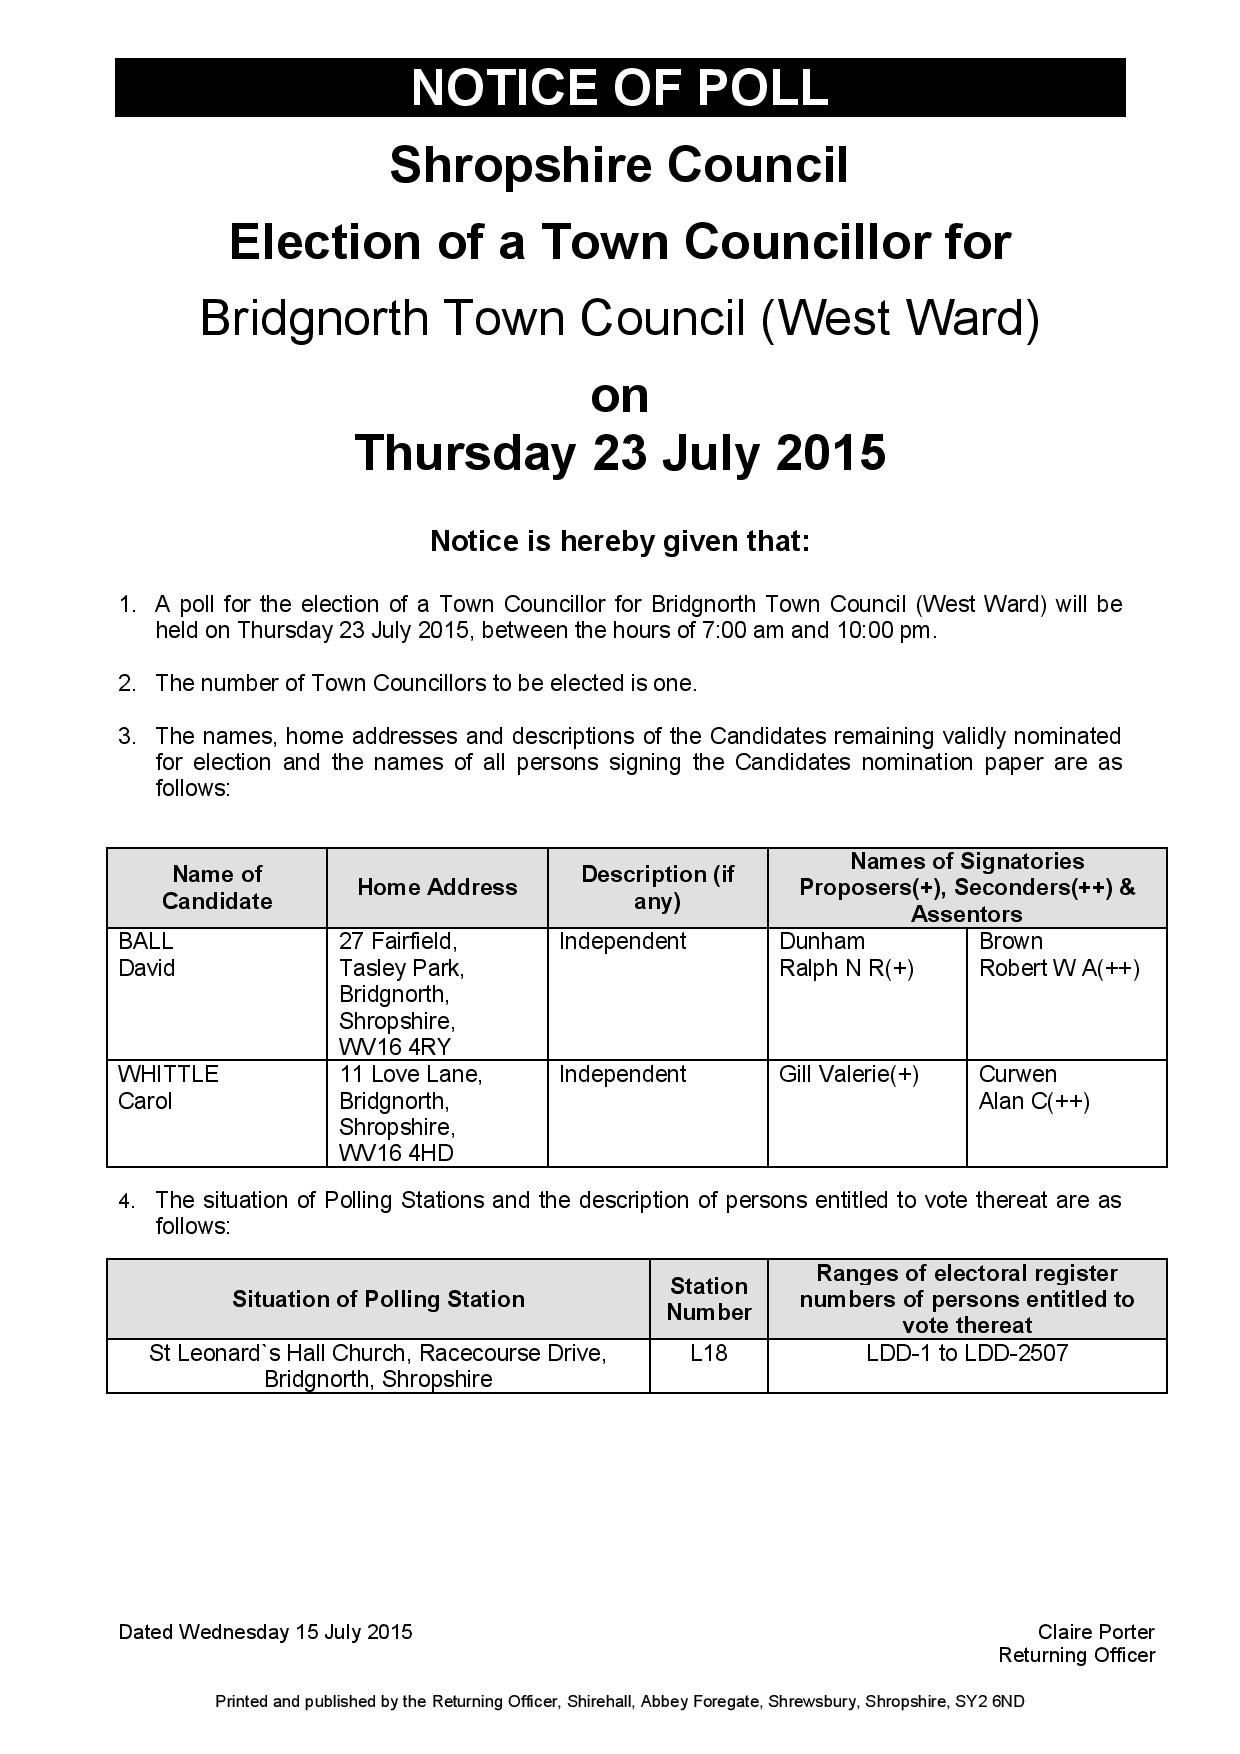 Notice of Poll - Bridgnorth Town Council (West Ward) - July 2015-page-001